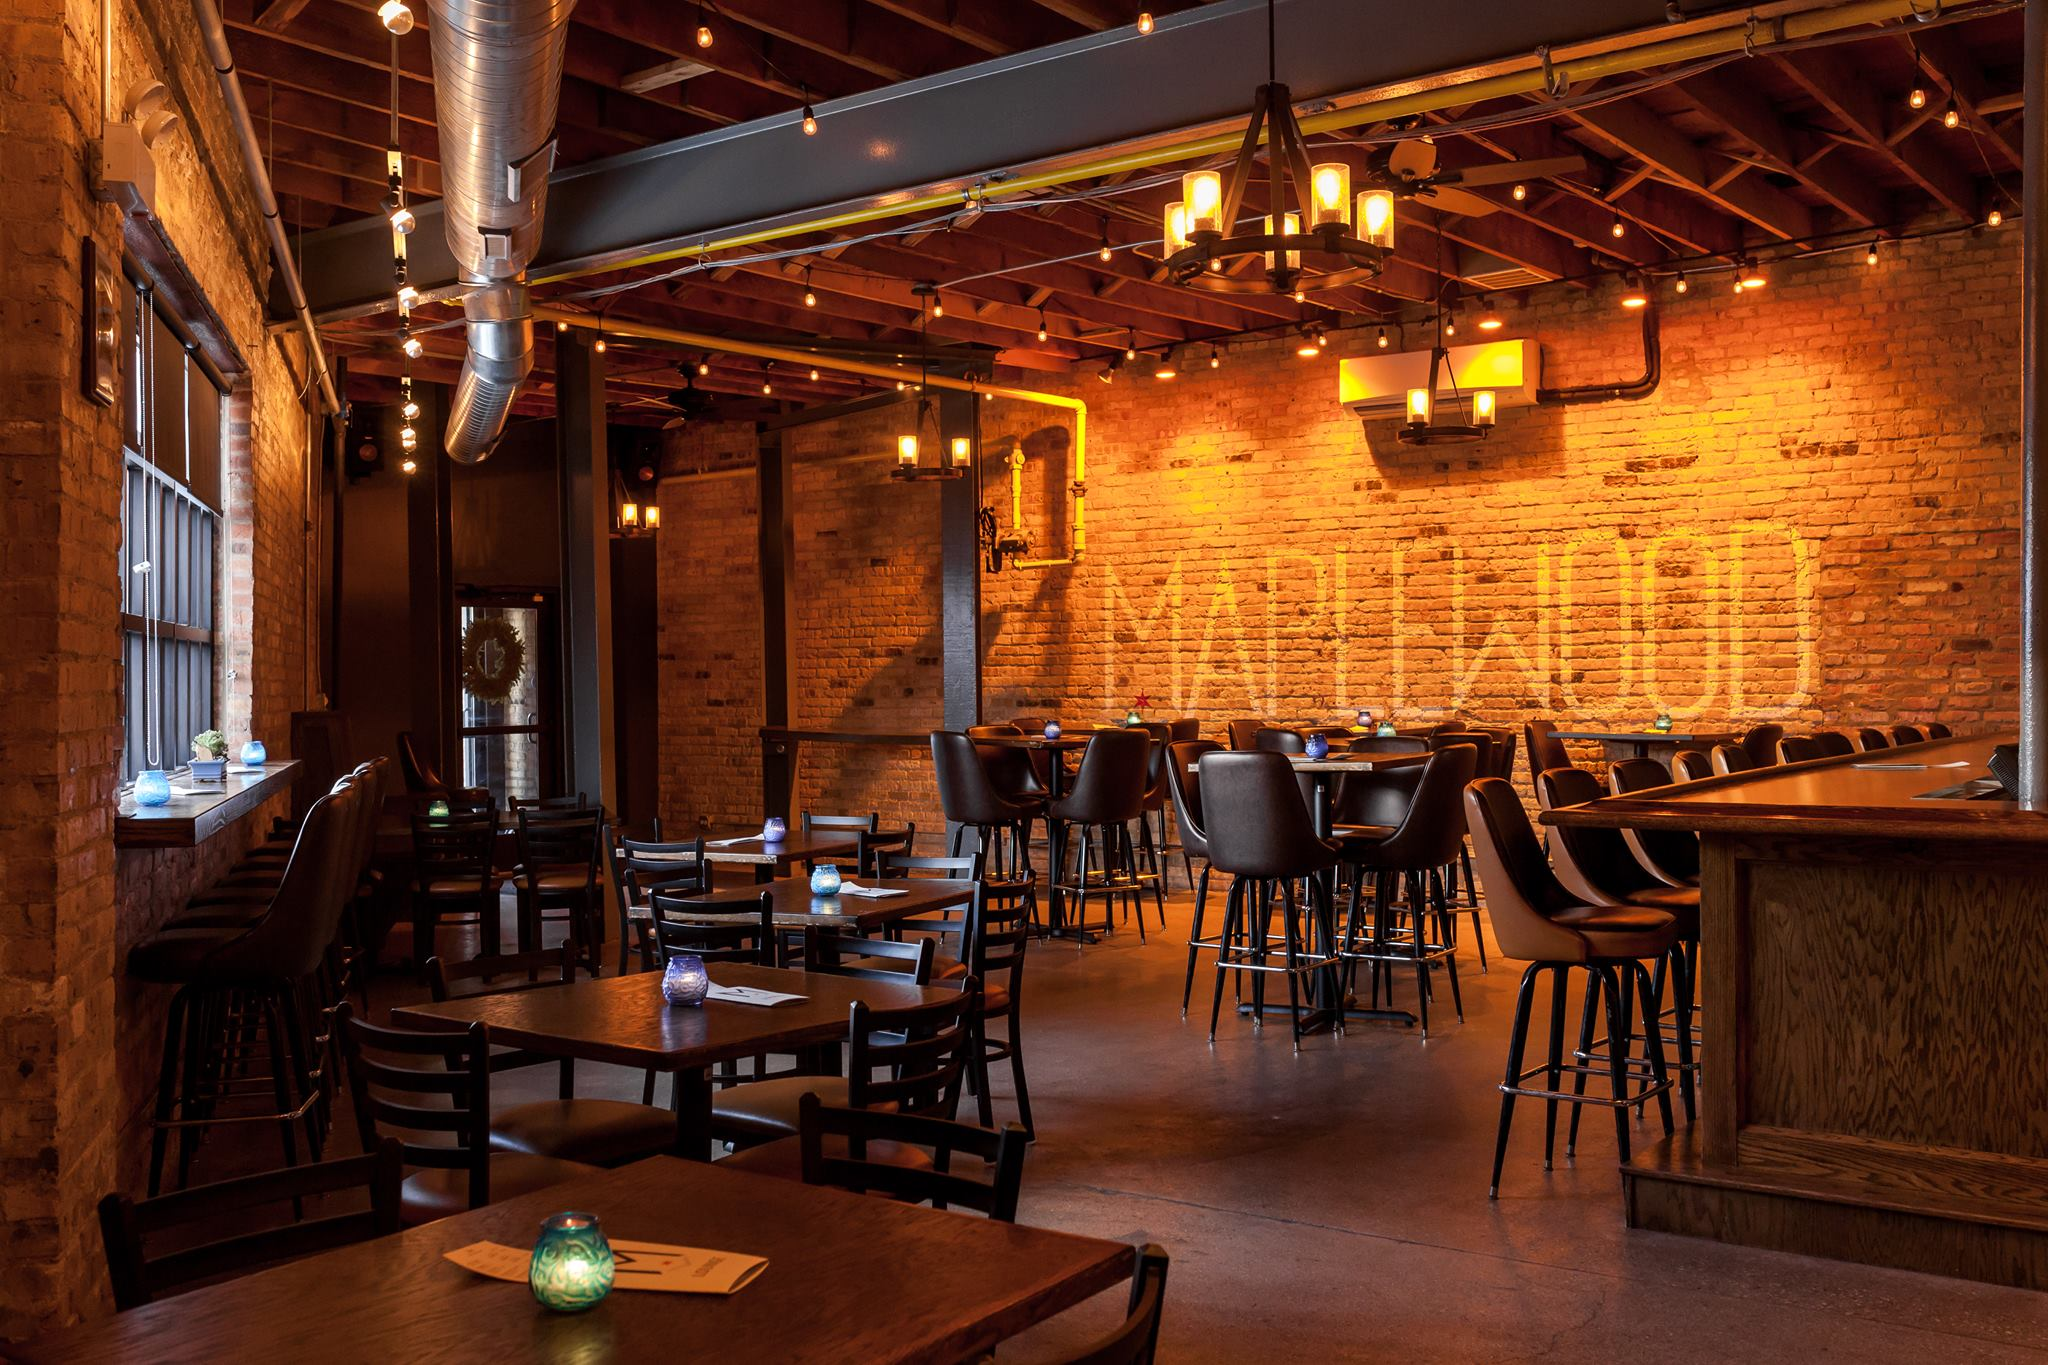 the taproom at Maplewood Brewery and Distillery, one of the best breweries in Chicago